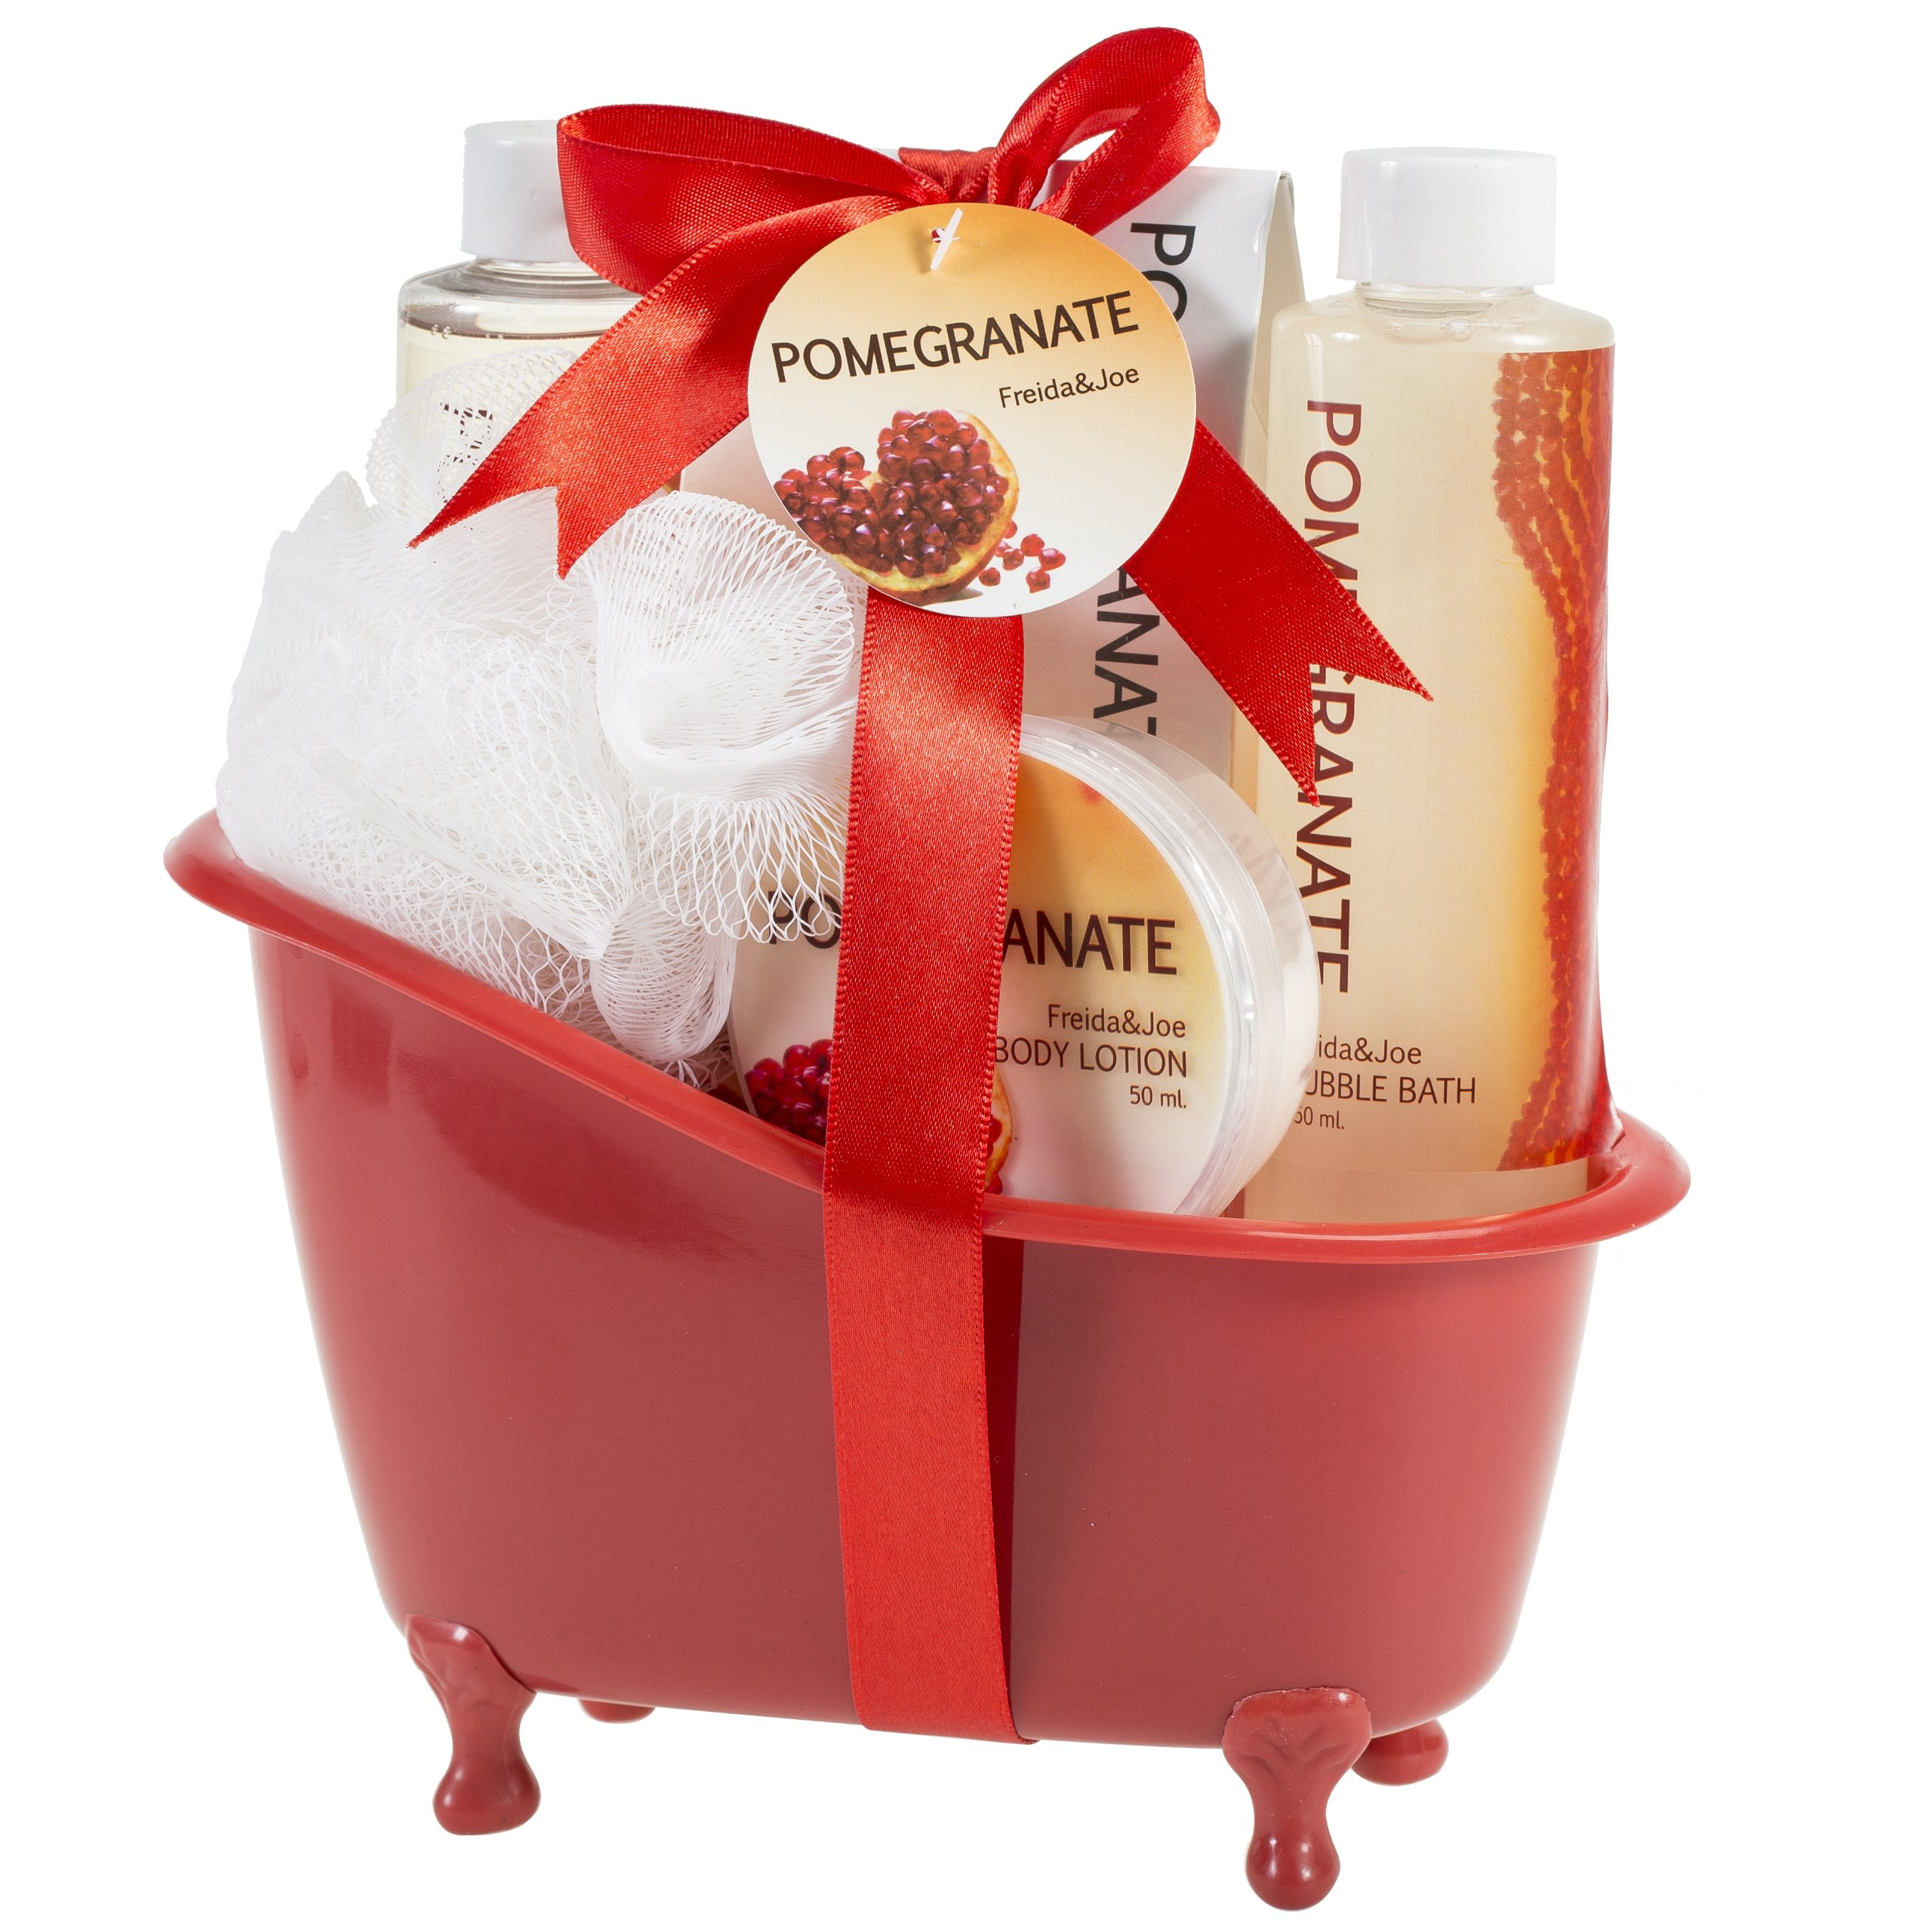 Freida and Joe Relaxing Aromatherapy Pomegranate Scent Fragrance Spa Gift Set Basket, Contains Shower Gel, Bubble Bath, Body Lotion, Bath Salt, Puff, with Shea Butter & Vitamin E, Perfect for Women